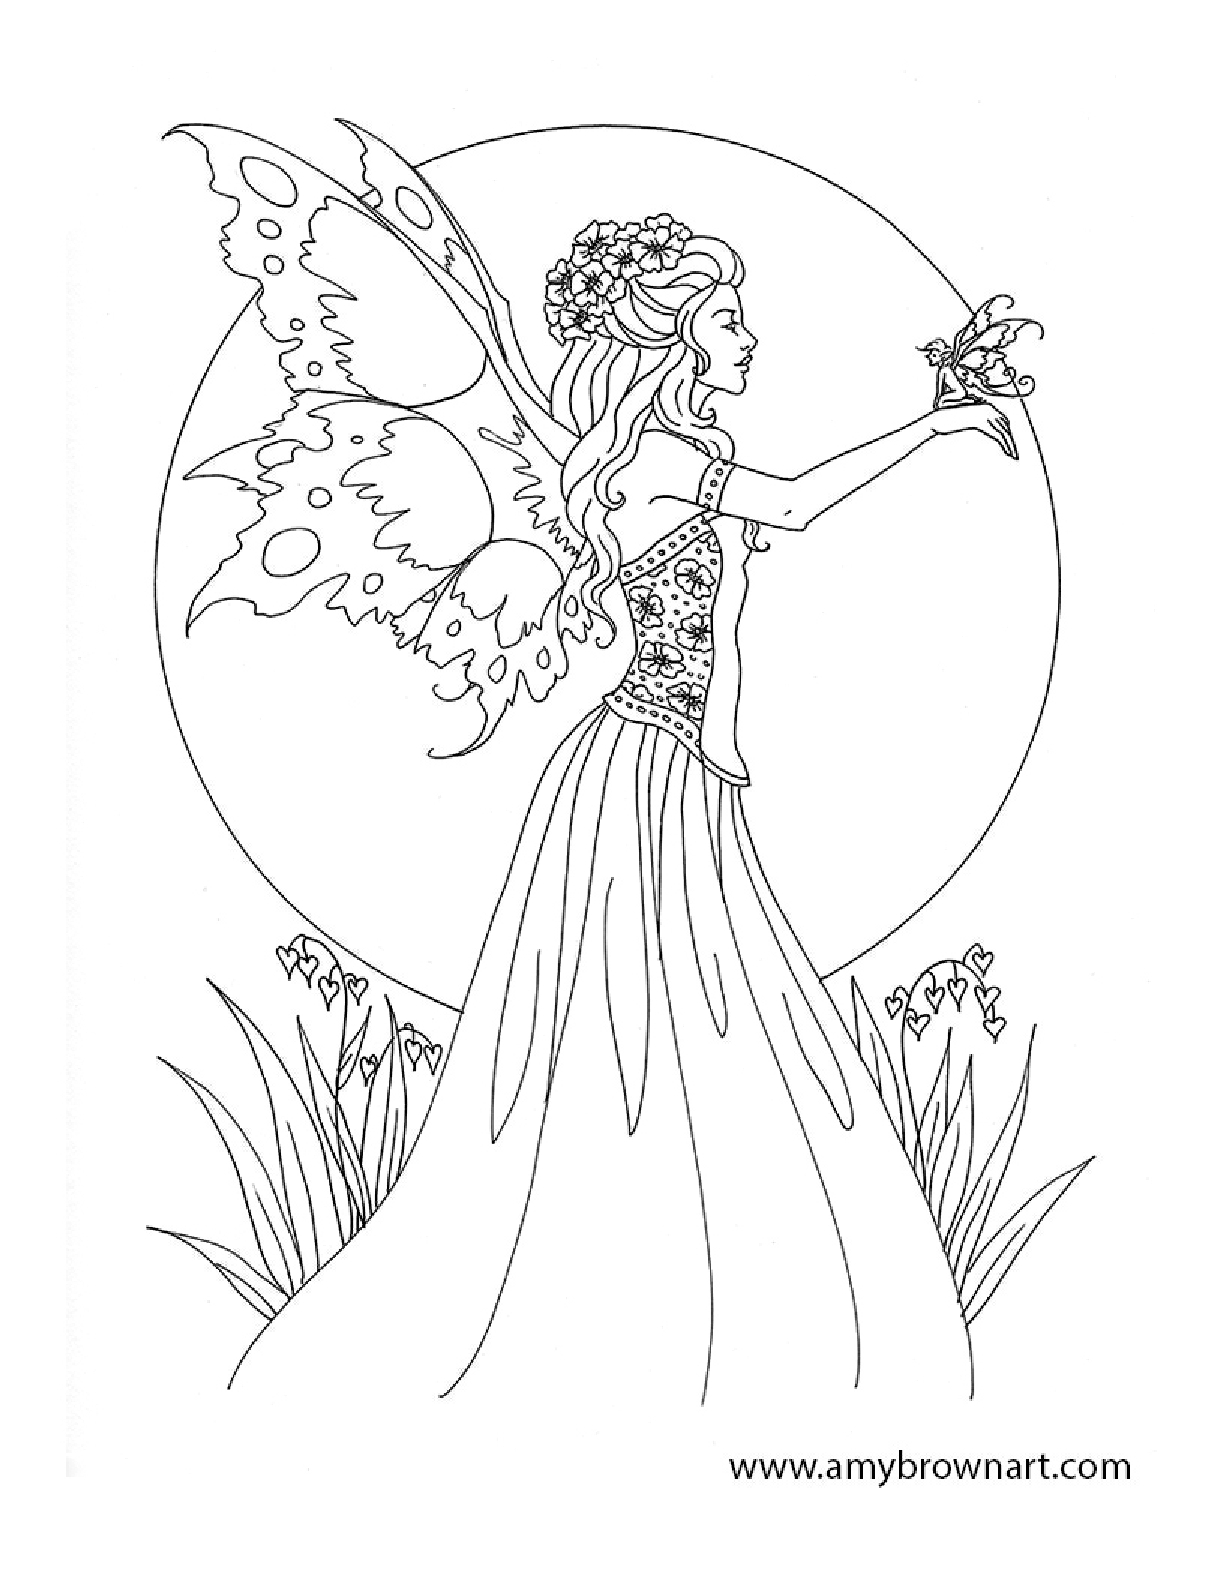 Amy Brown Fairy Coloring Book Fairy Myth Mythical Mystical Legend - Free Printable Coloring Pages For Adults Dark Fairies